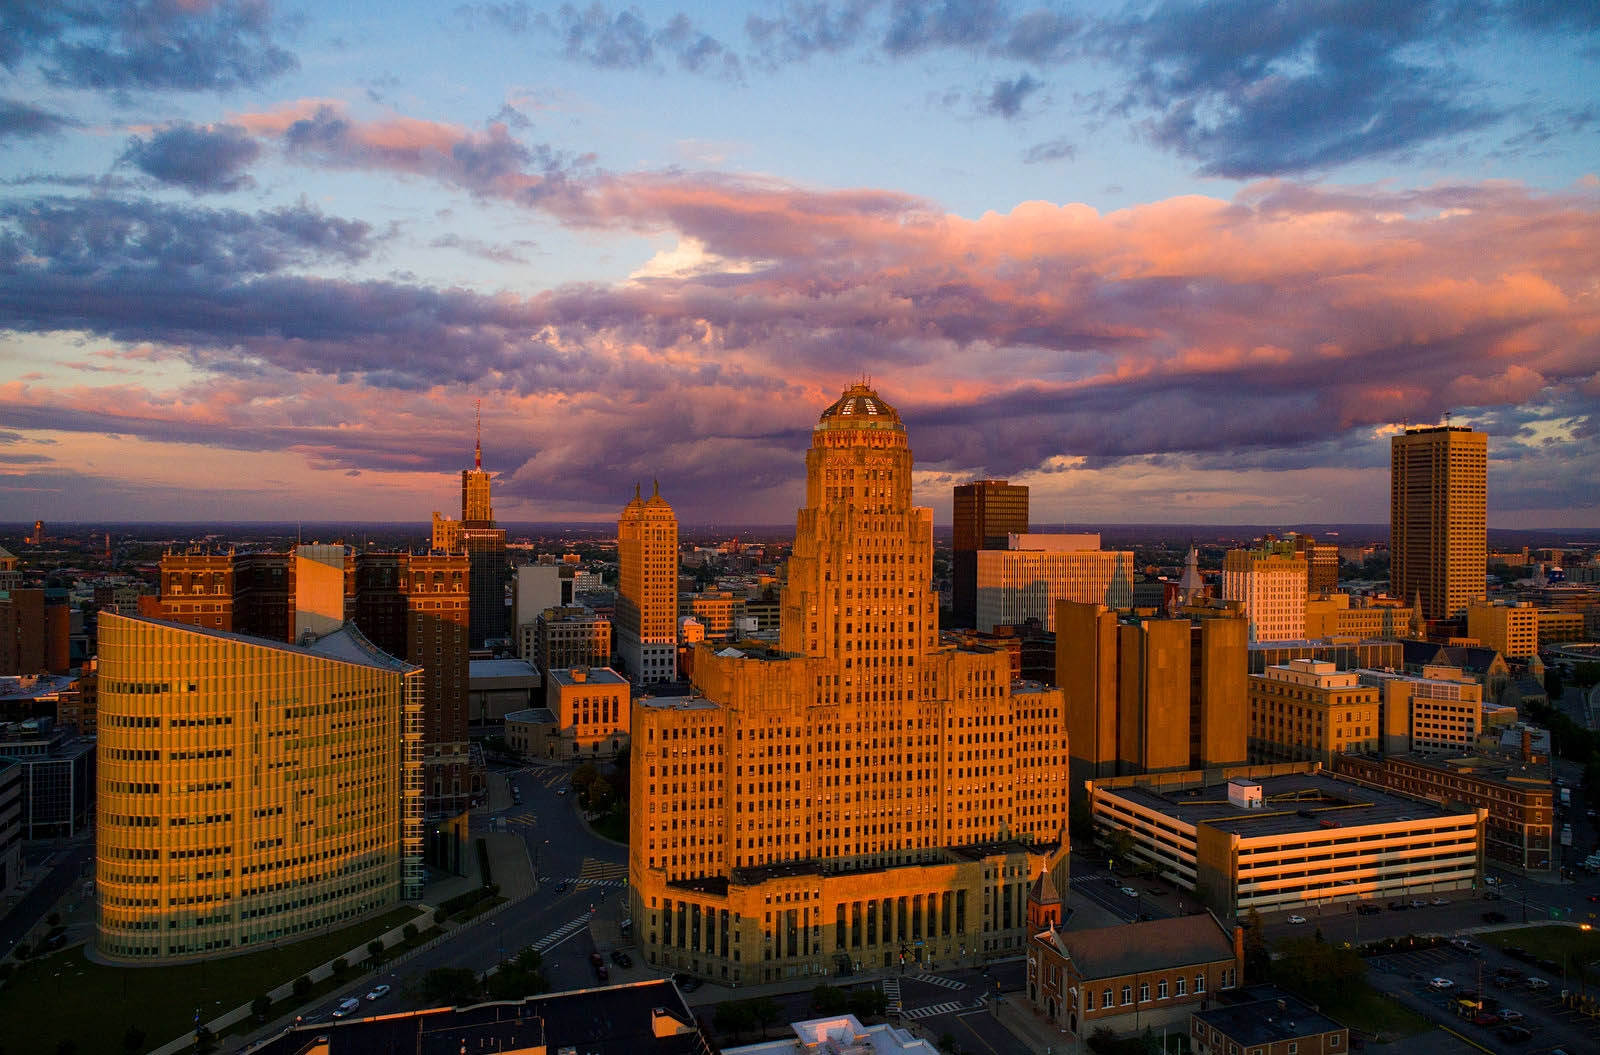 A view of Buffalo City Hall at sunset.